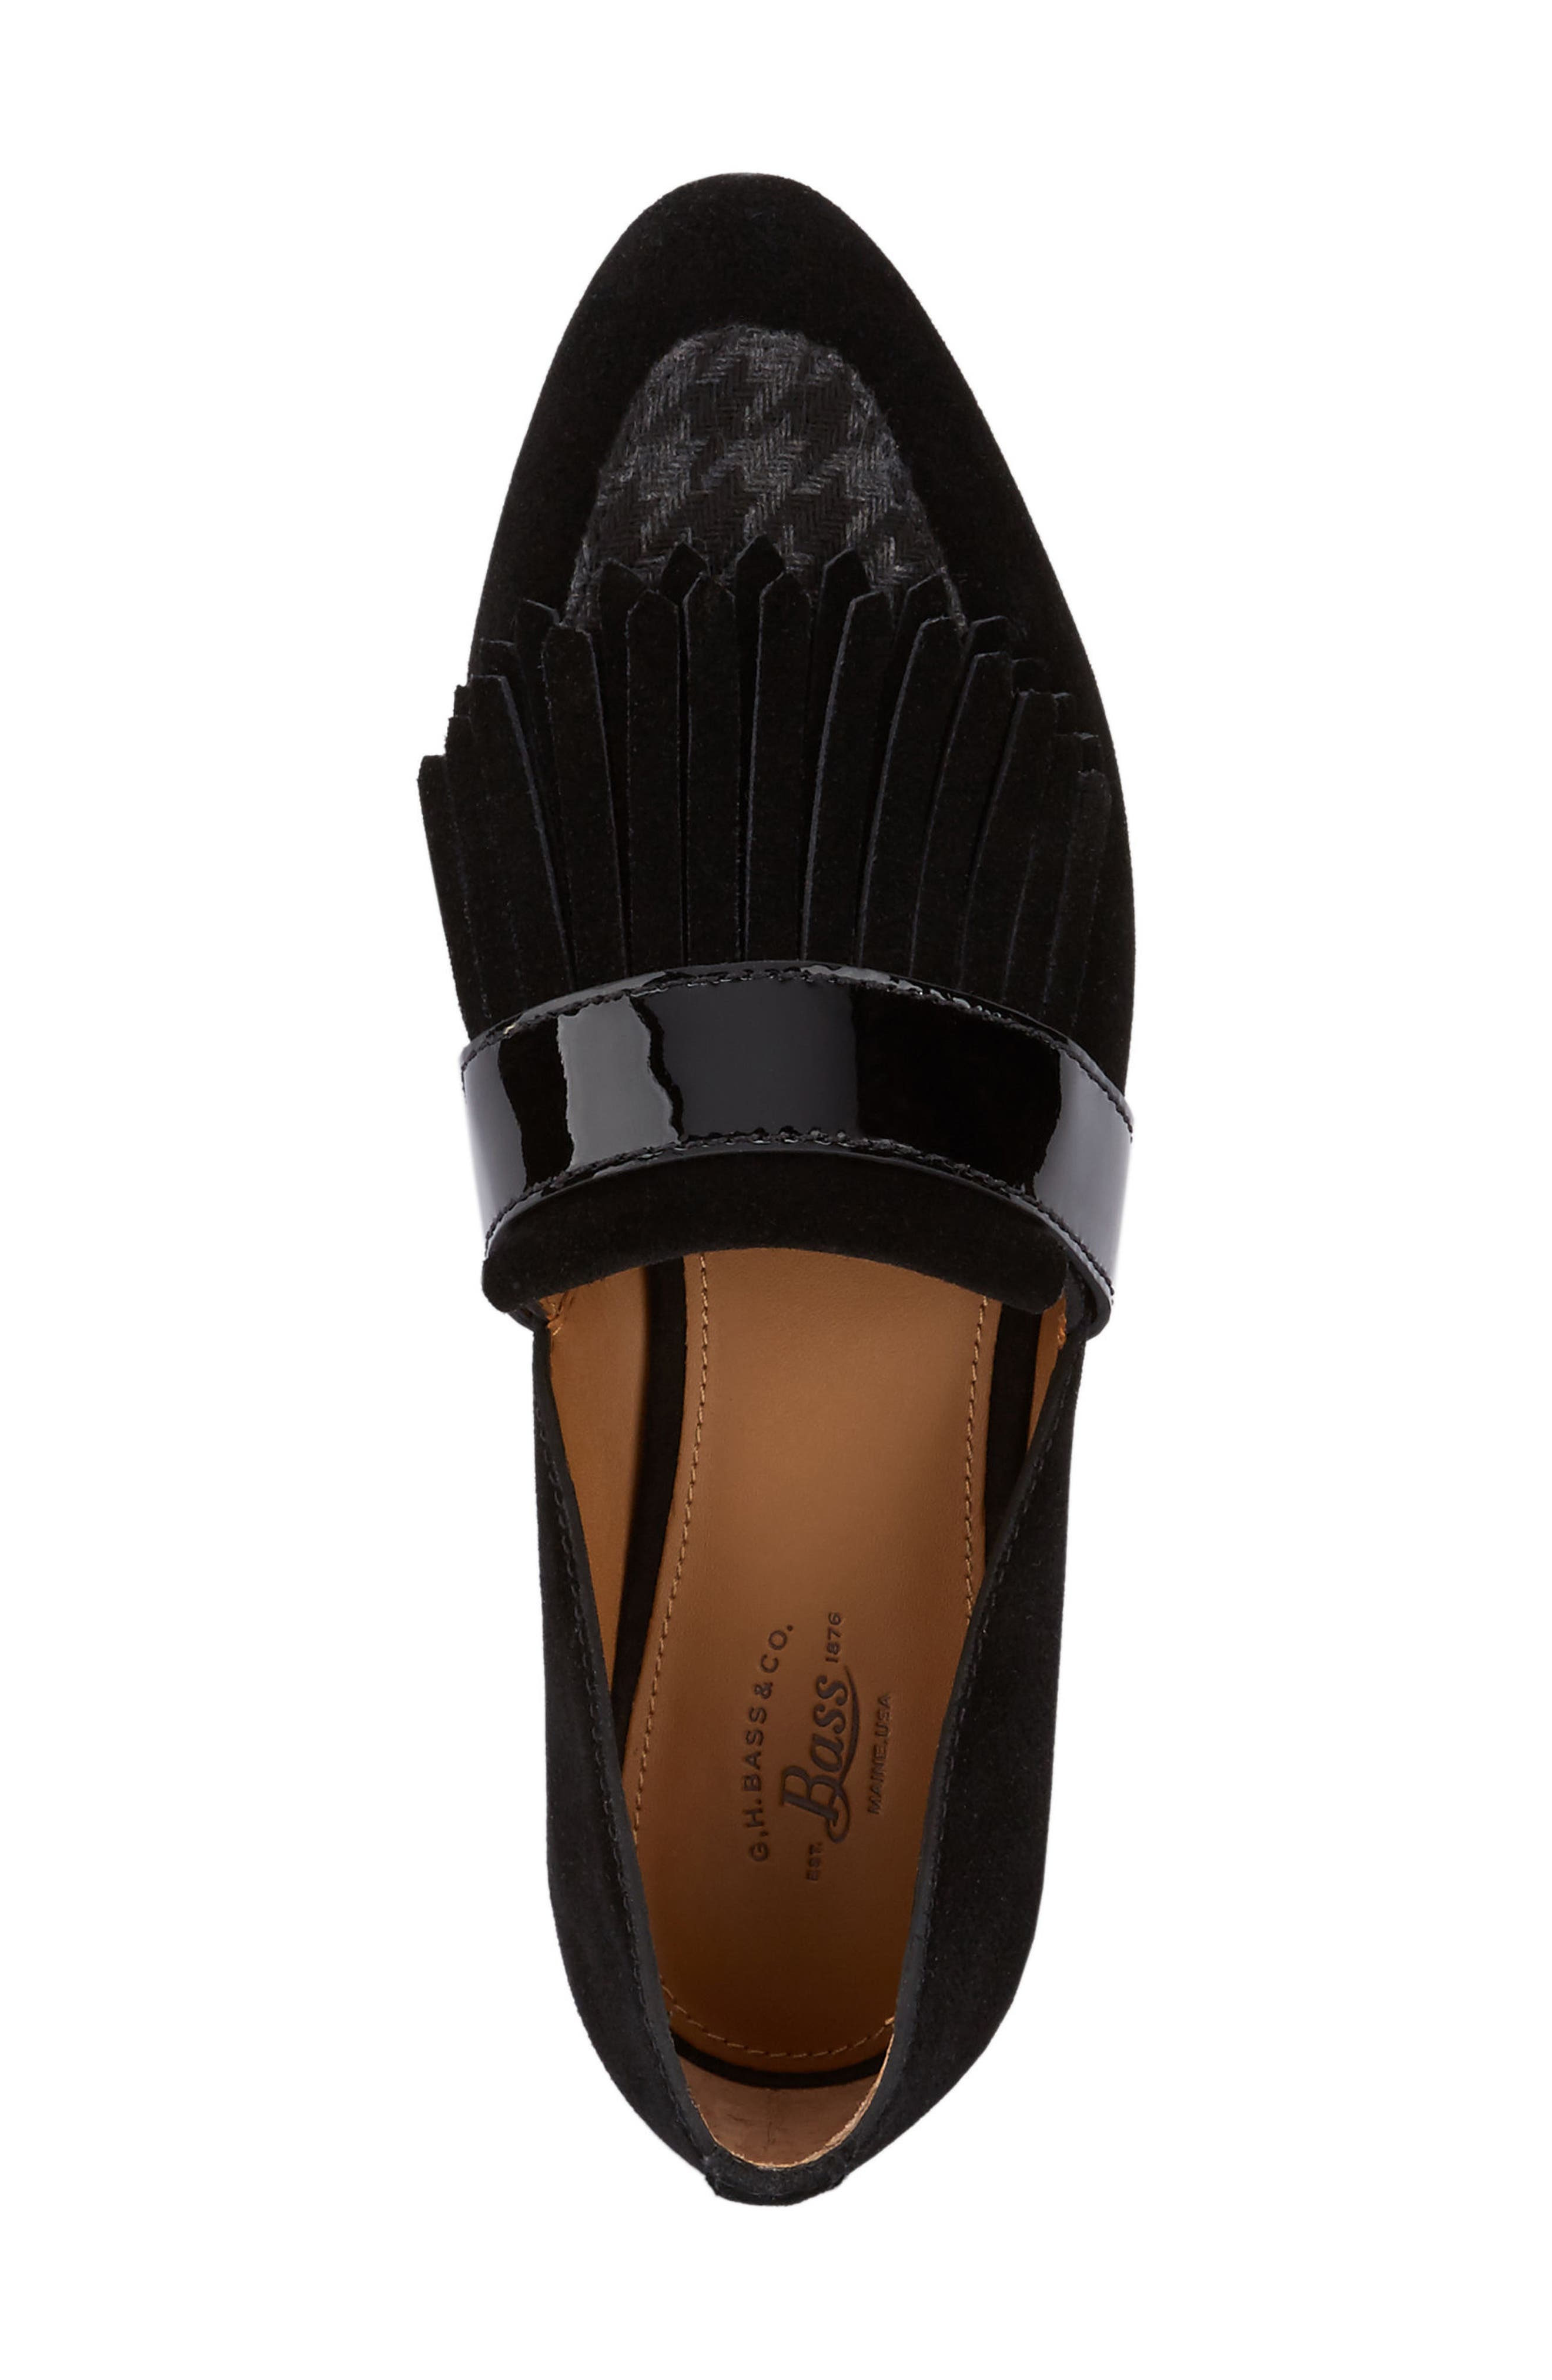 'Harlow' Kiltie Leather Loafer,                             Alternate thumbnail 3, color,                             002